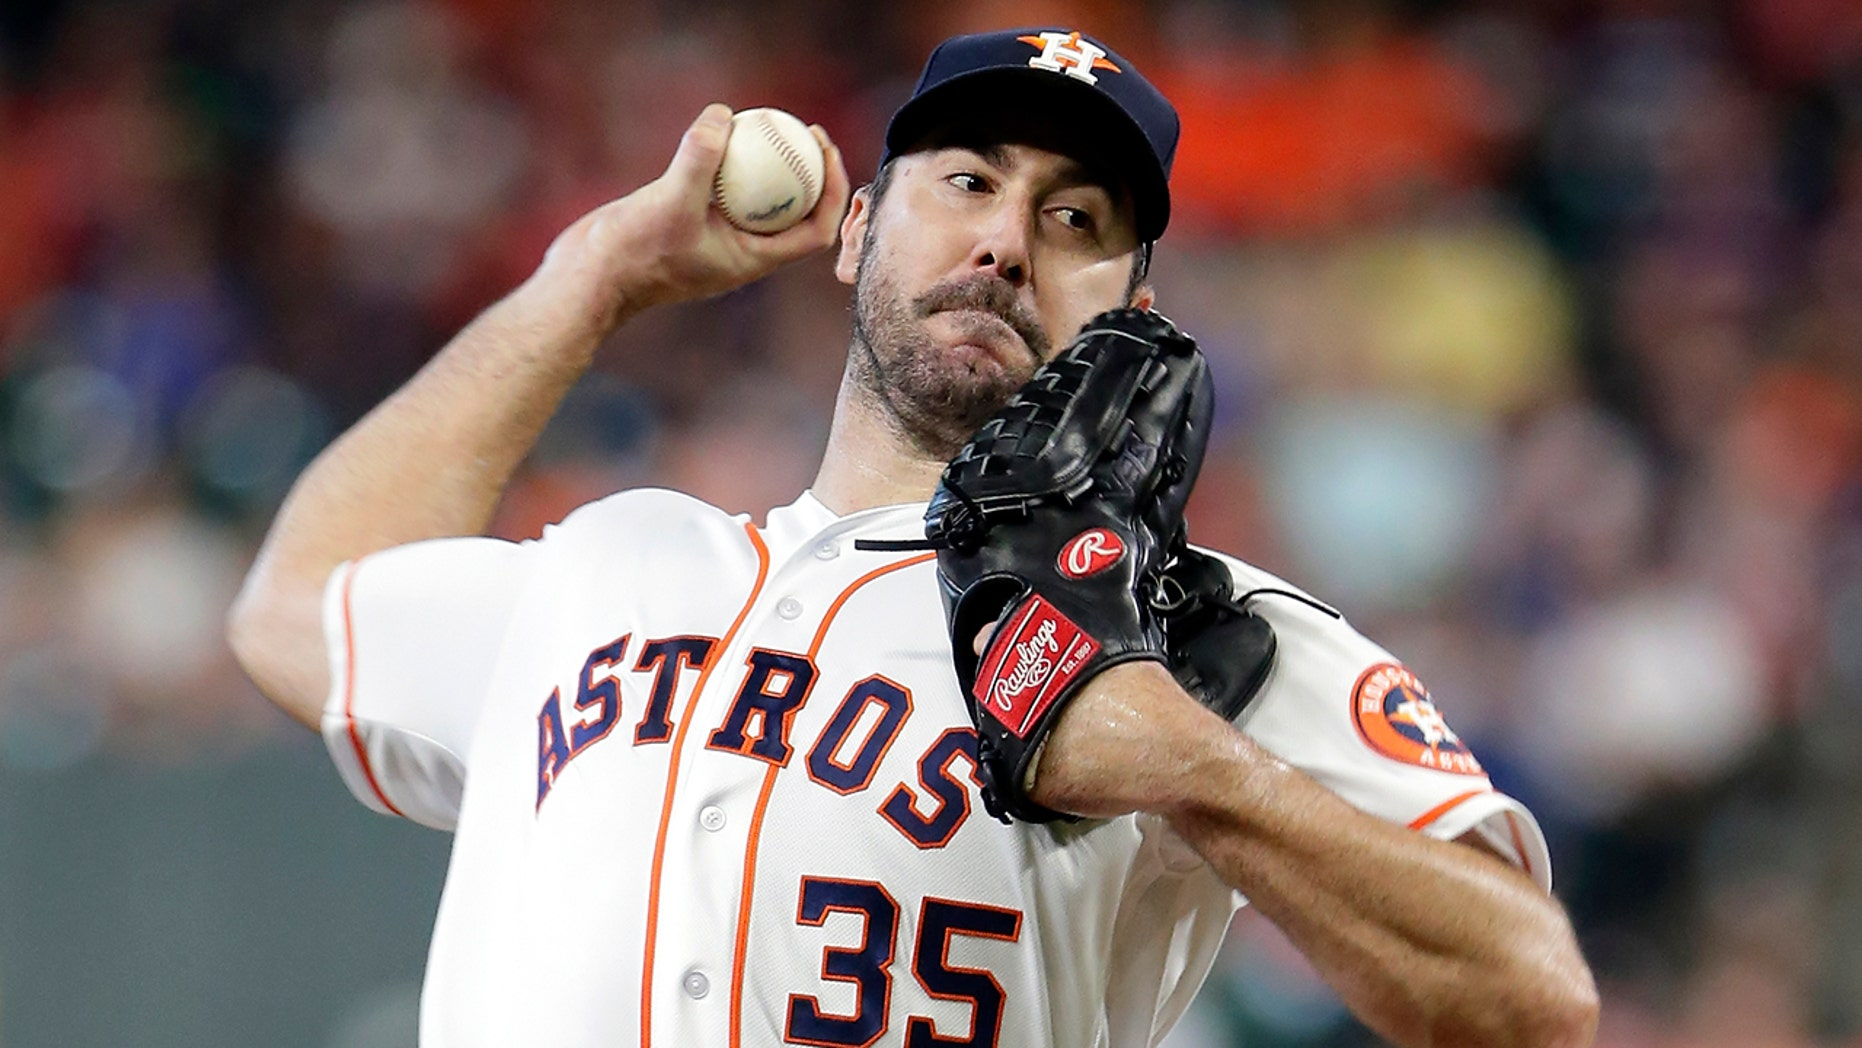 FILE - In this July 24, 2019, file photo, Houston Astros starting pitcher Justin Verlander throws to an Oakland Athletics batter during a baseball game in Houston. Verlander has been awarded his second AL Cy Young Award. (AP Photo/Michael Wyke, File)